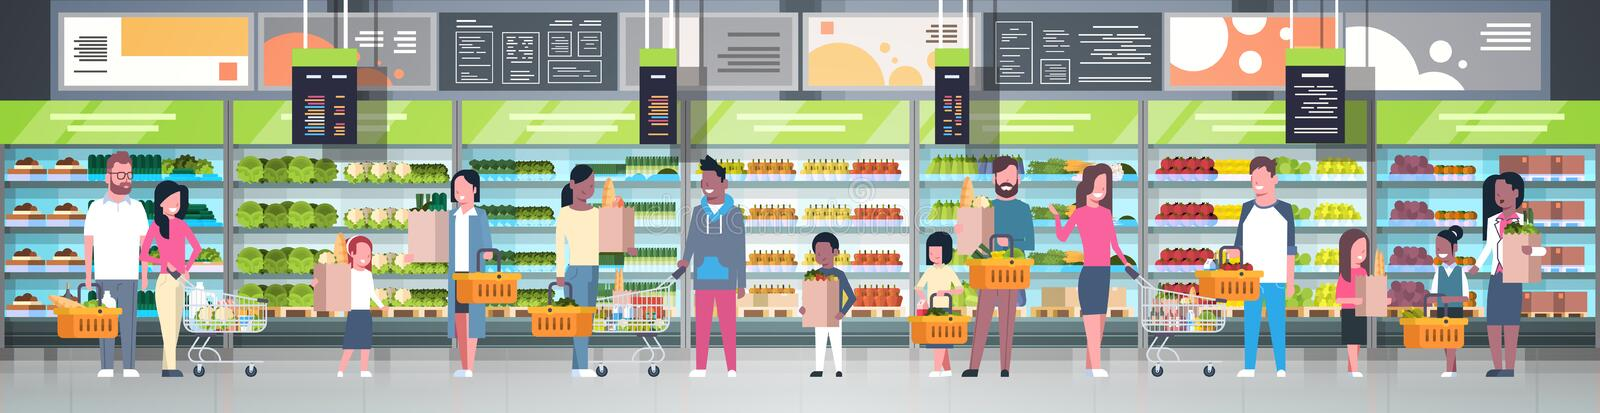 Group Of People In Supermarket Holding Bags, Baskets And Pushing Trolleys Over Shelves With Grocery Products Consumerism royalty free illustration